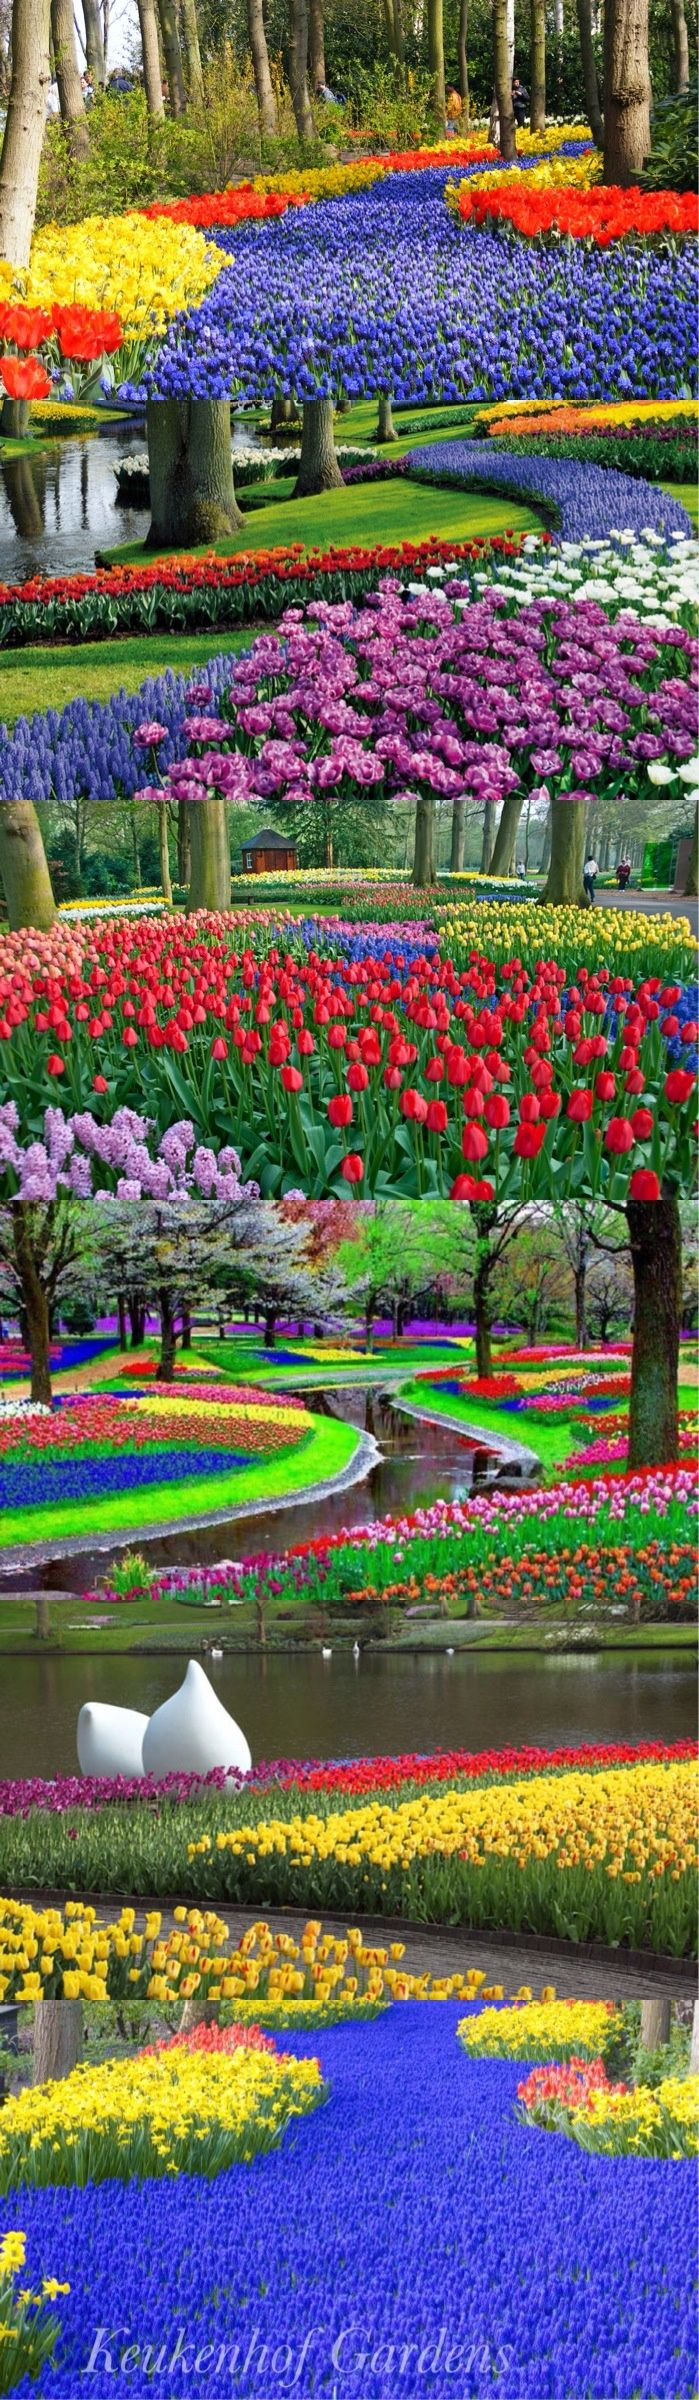 The Keukenhof features a variety of different gardens and garden styles. For example, the English landscape garden features winding paths and unexpected see-through points.  The historical garden is an enclosed garden where you can see many old types of bulbs.